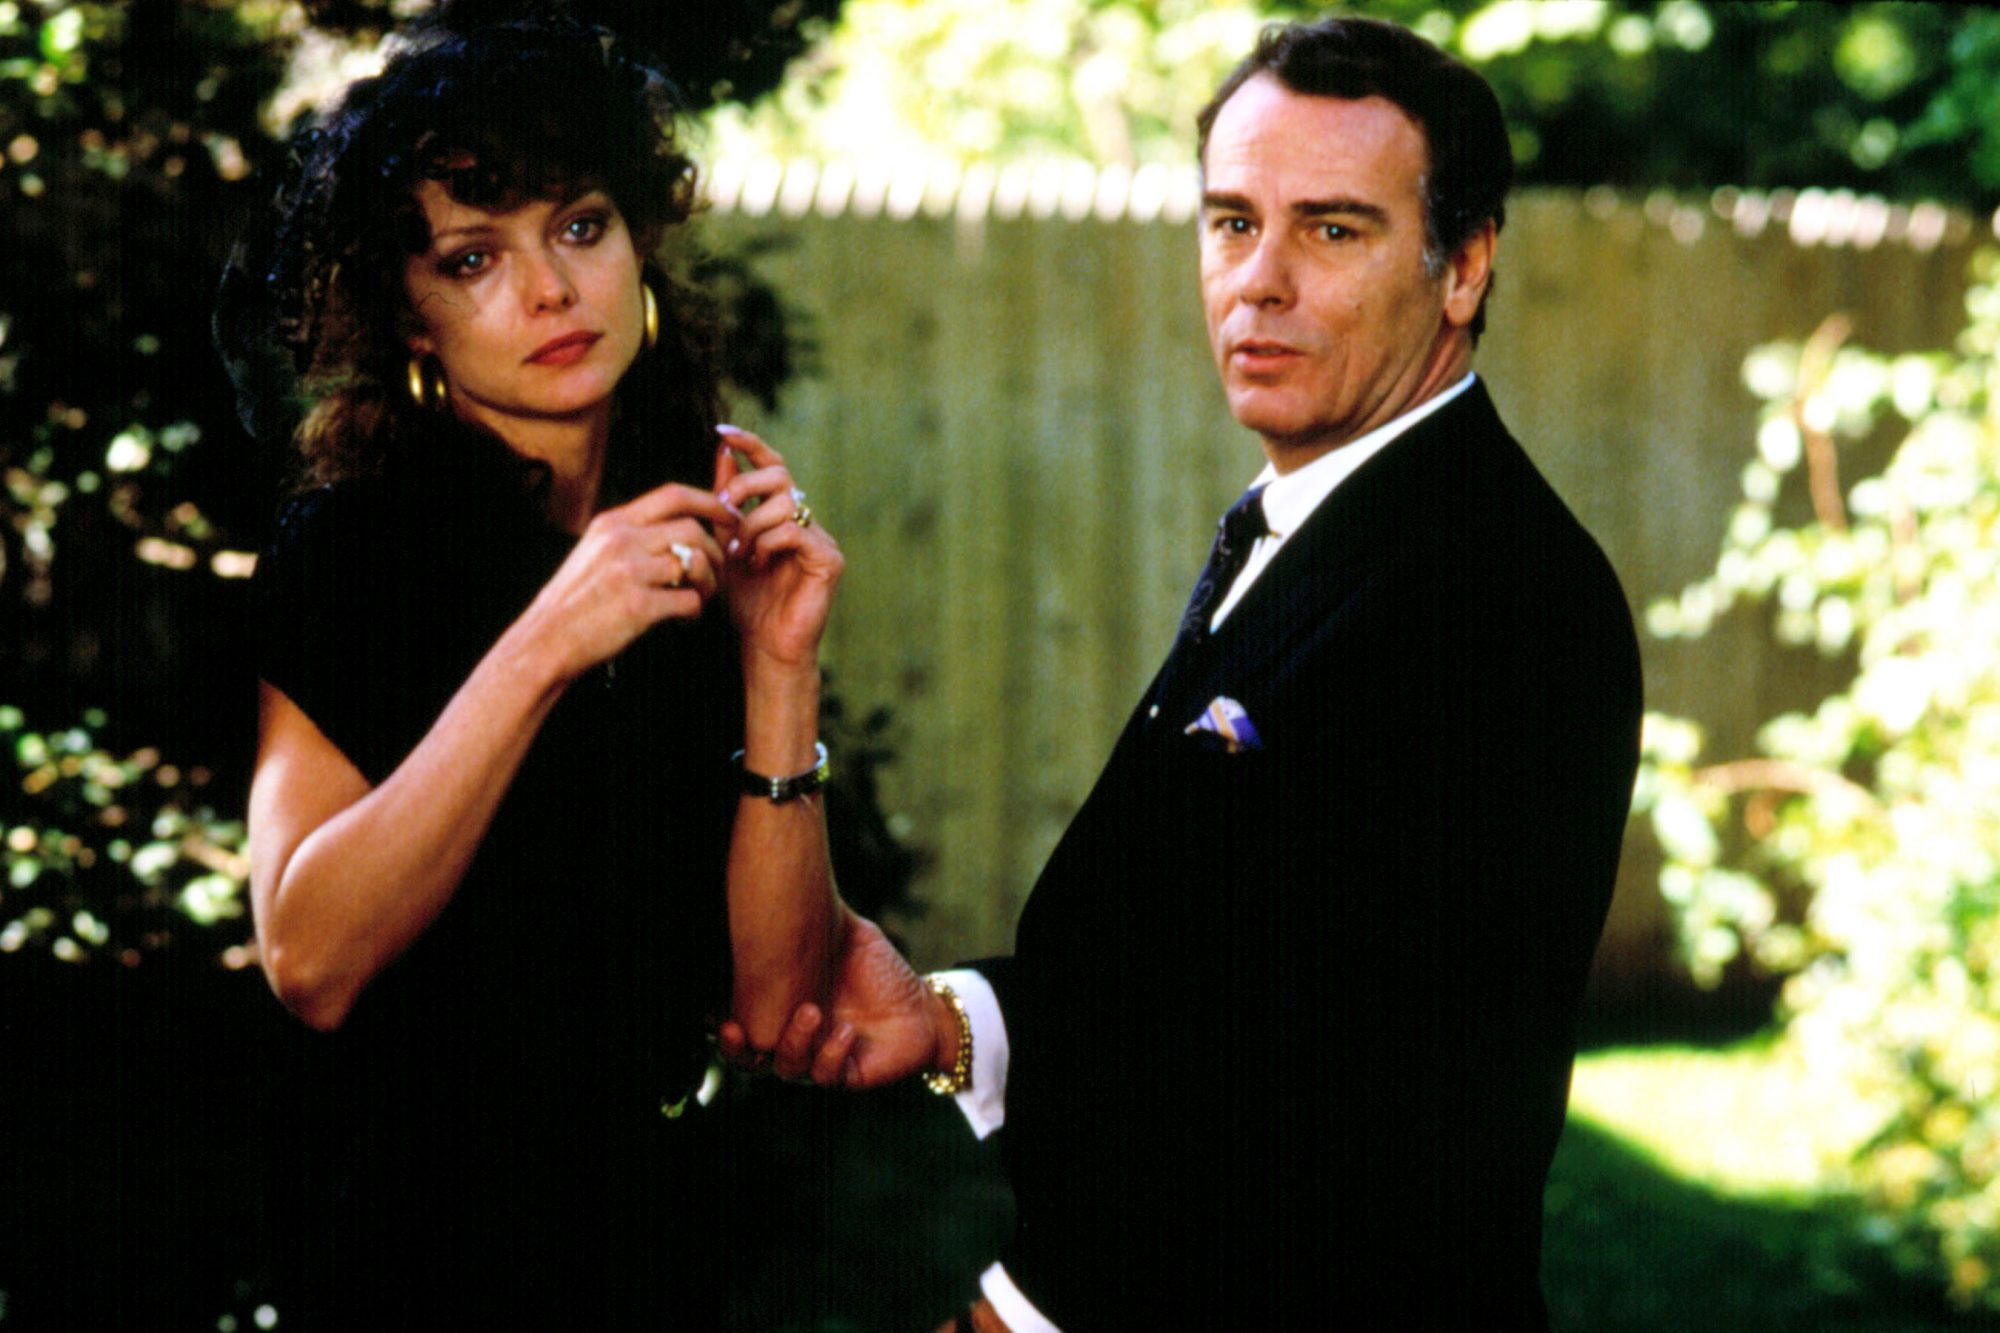 MARRIED TO THE MOB, Michelle Pfeiffer, Dean Stockwell, 1988, (c) Orion/courtesy Everett Collection